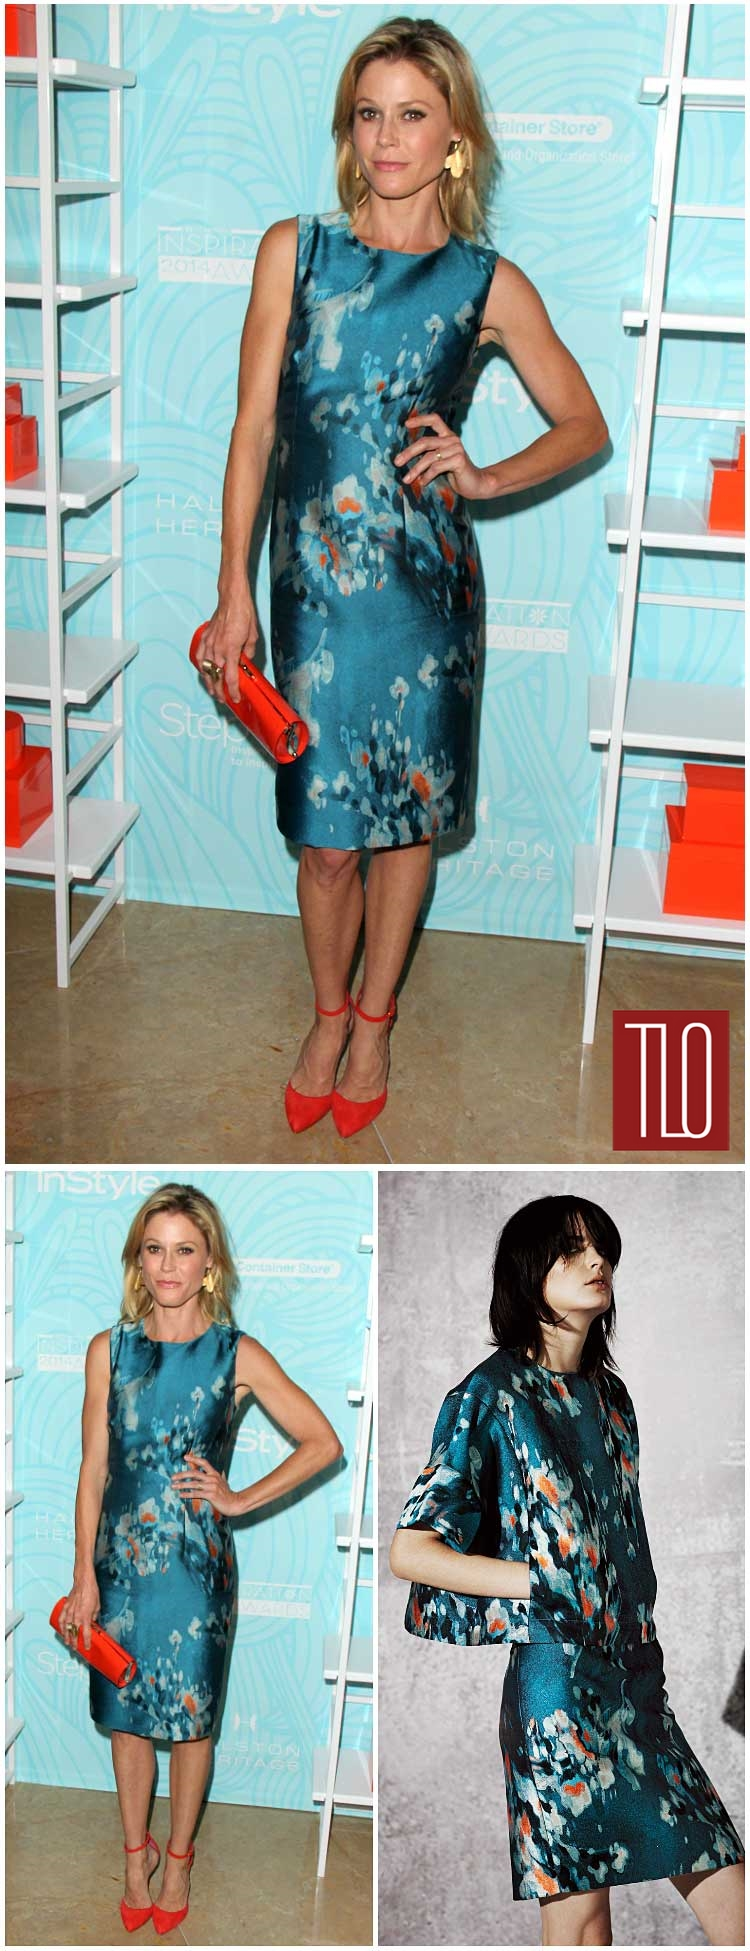 Julie-Bowen-Philosophy-2014-Step-Up-Inspiration-Awards-Tom-Lorenzo-Site-TLO (1)